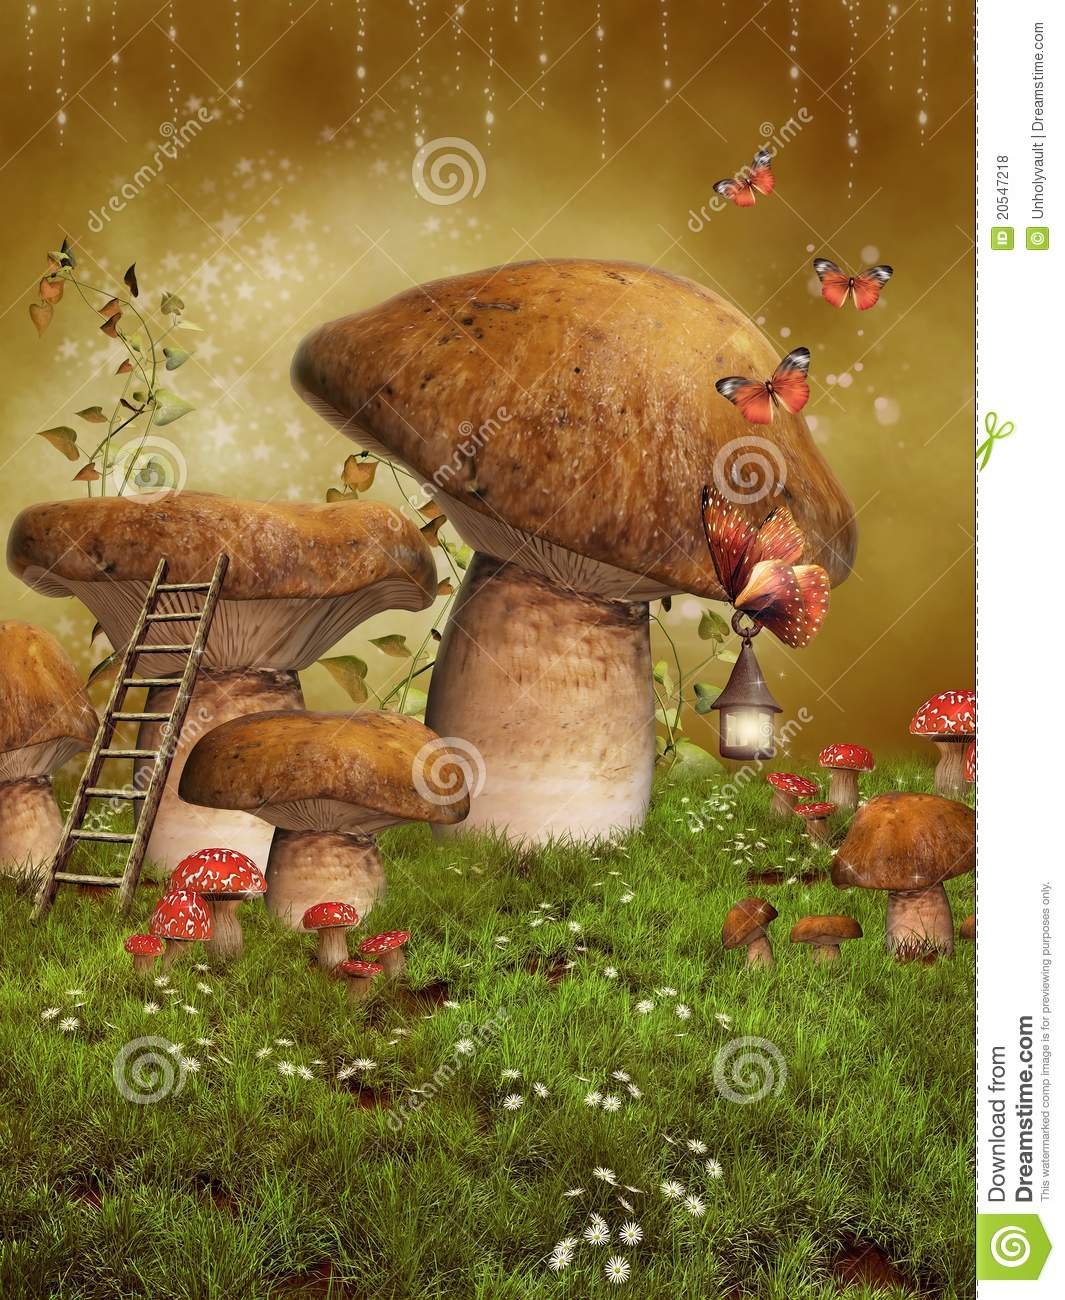 Royalty Free Stock Photos Fantasy Fairy Mushrooms Image20547218 likewise Stock Photo Wooden Cottage House Windows Iblue Image43899819 together with 22jul13 The Breezeway Roof Line 10 The Dual Angled Roof Line Modified also Playhouse Plans moreover Log Homes. on forest cottage house plans